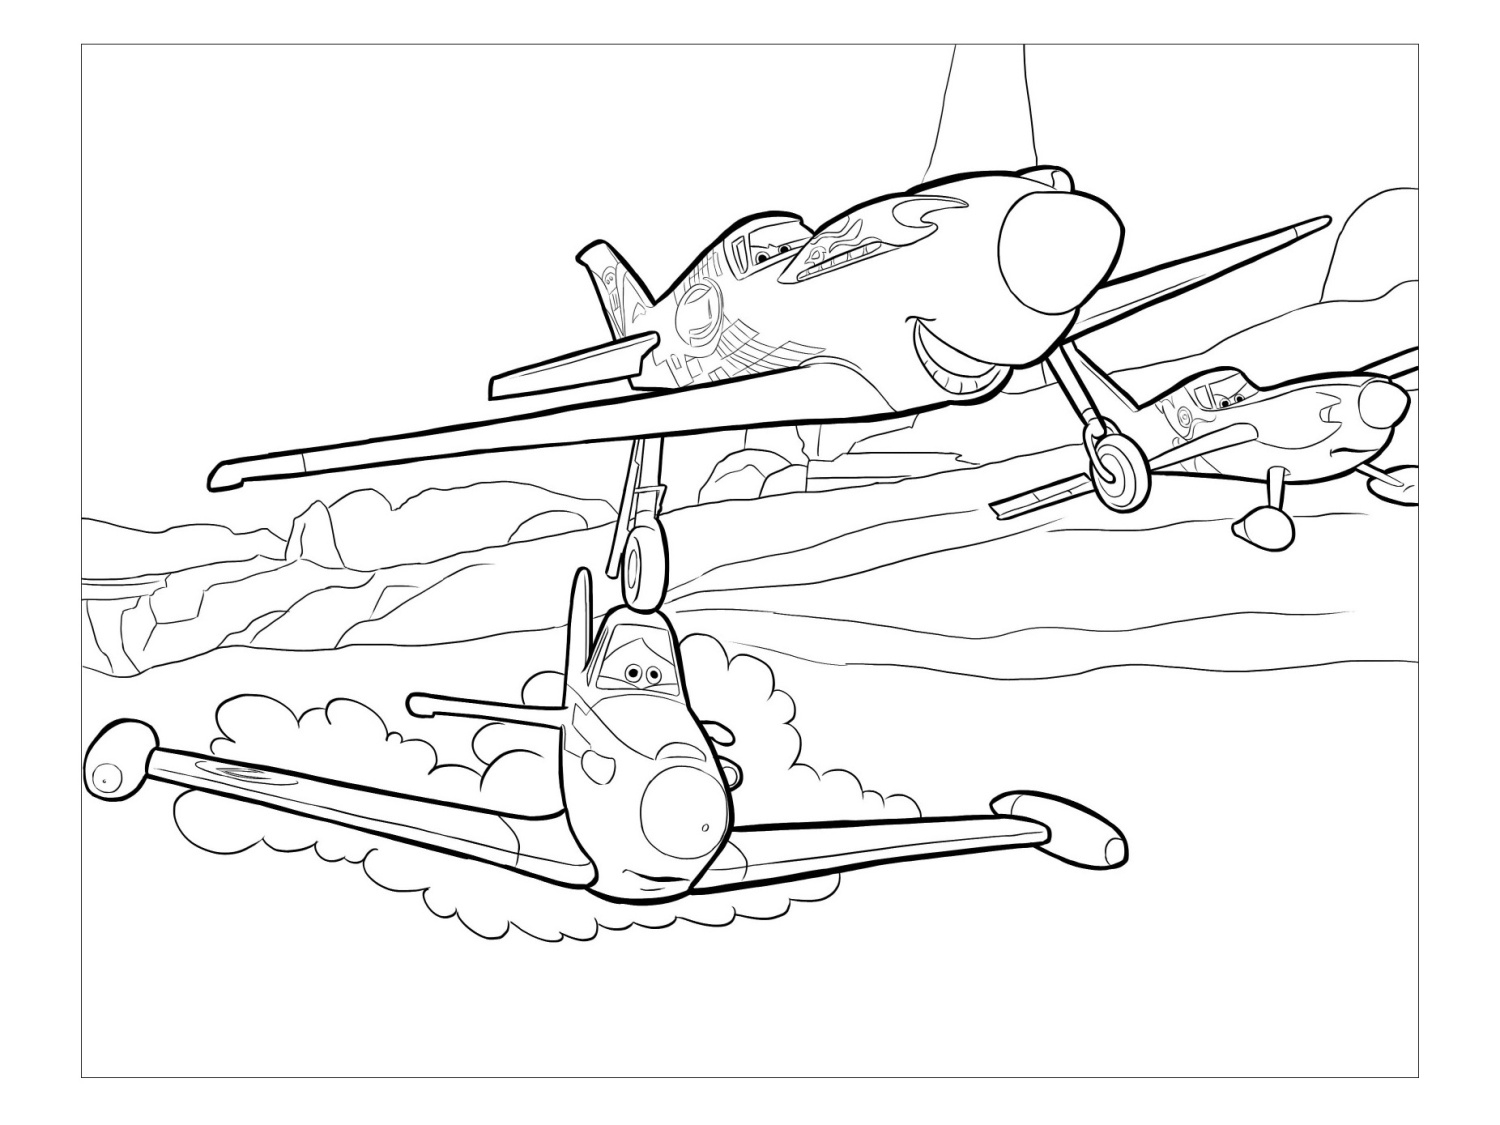 disney planes coloring pages skipper - photo#21